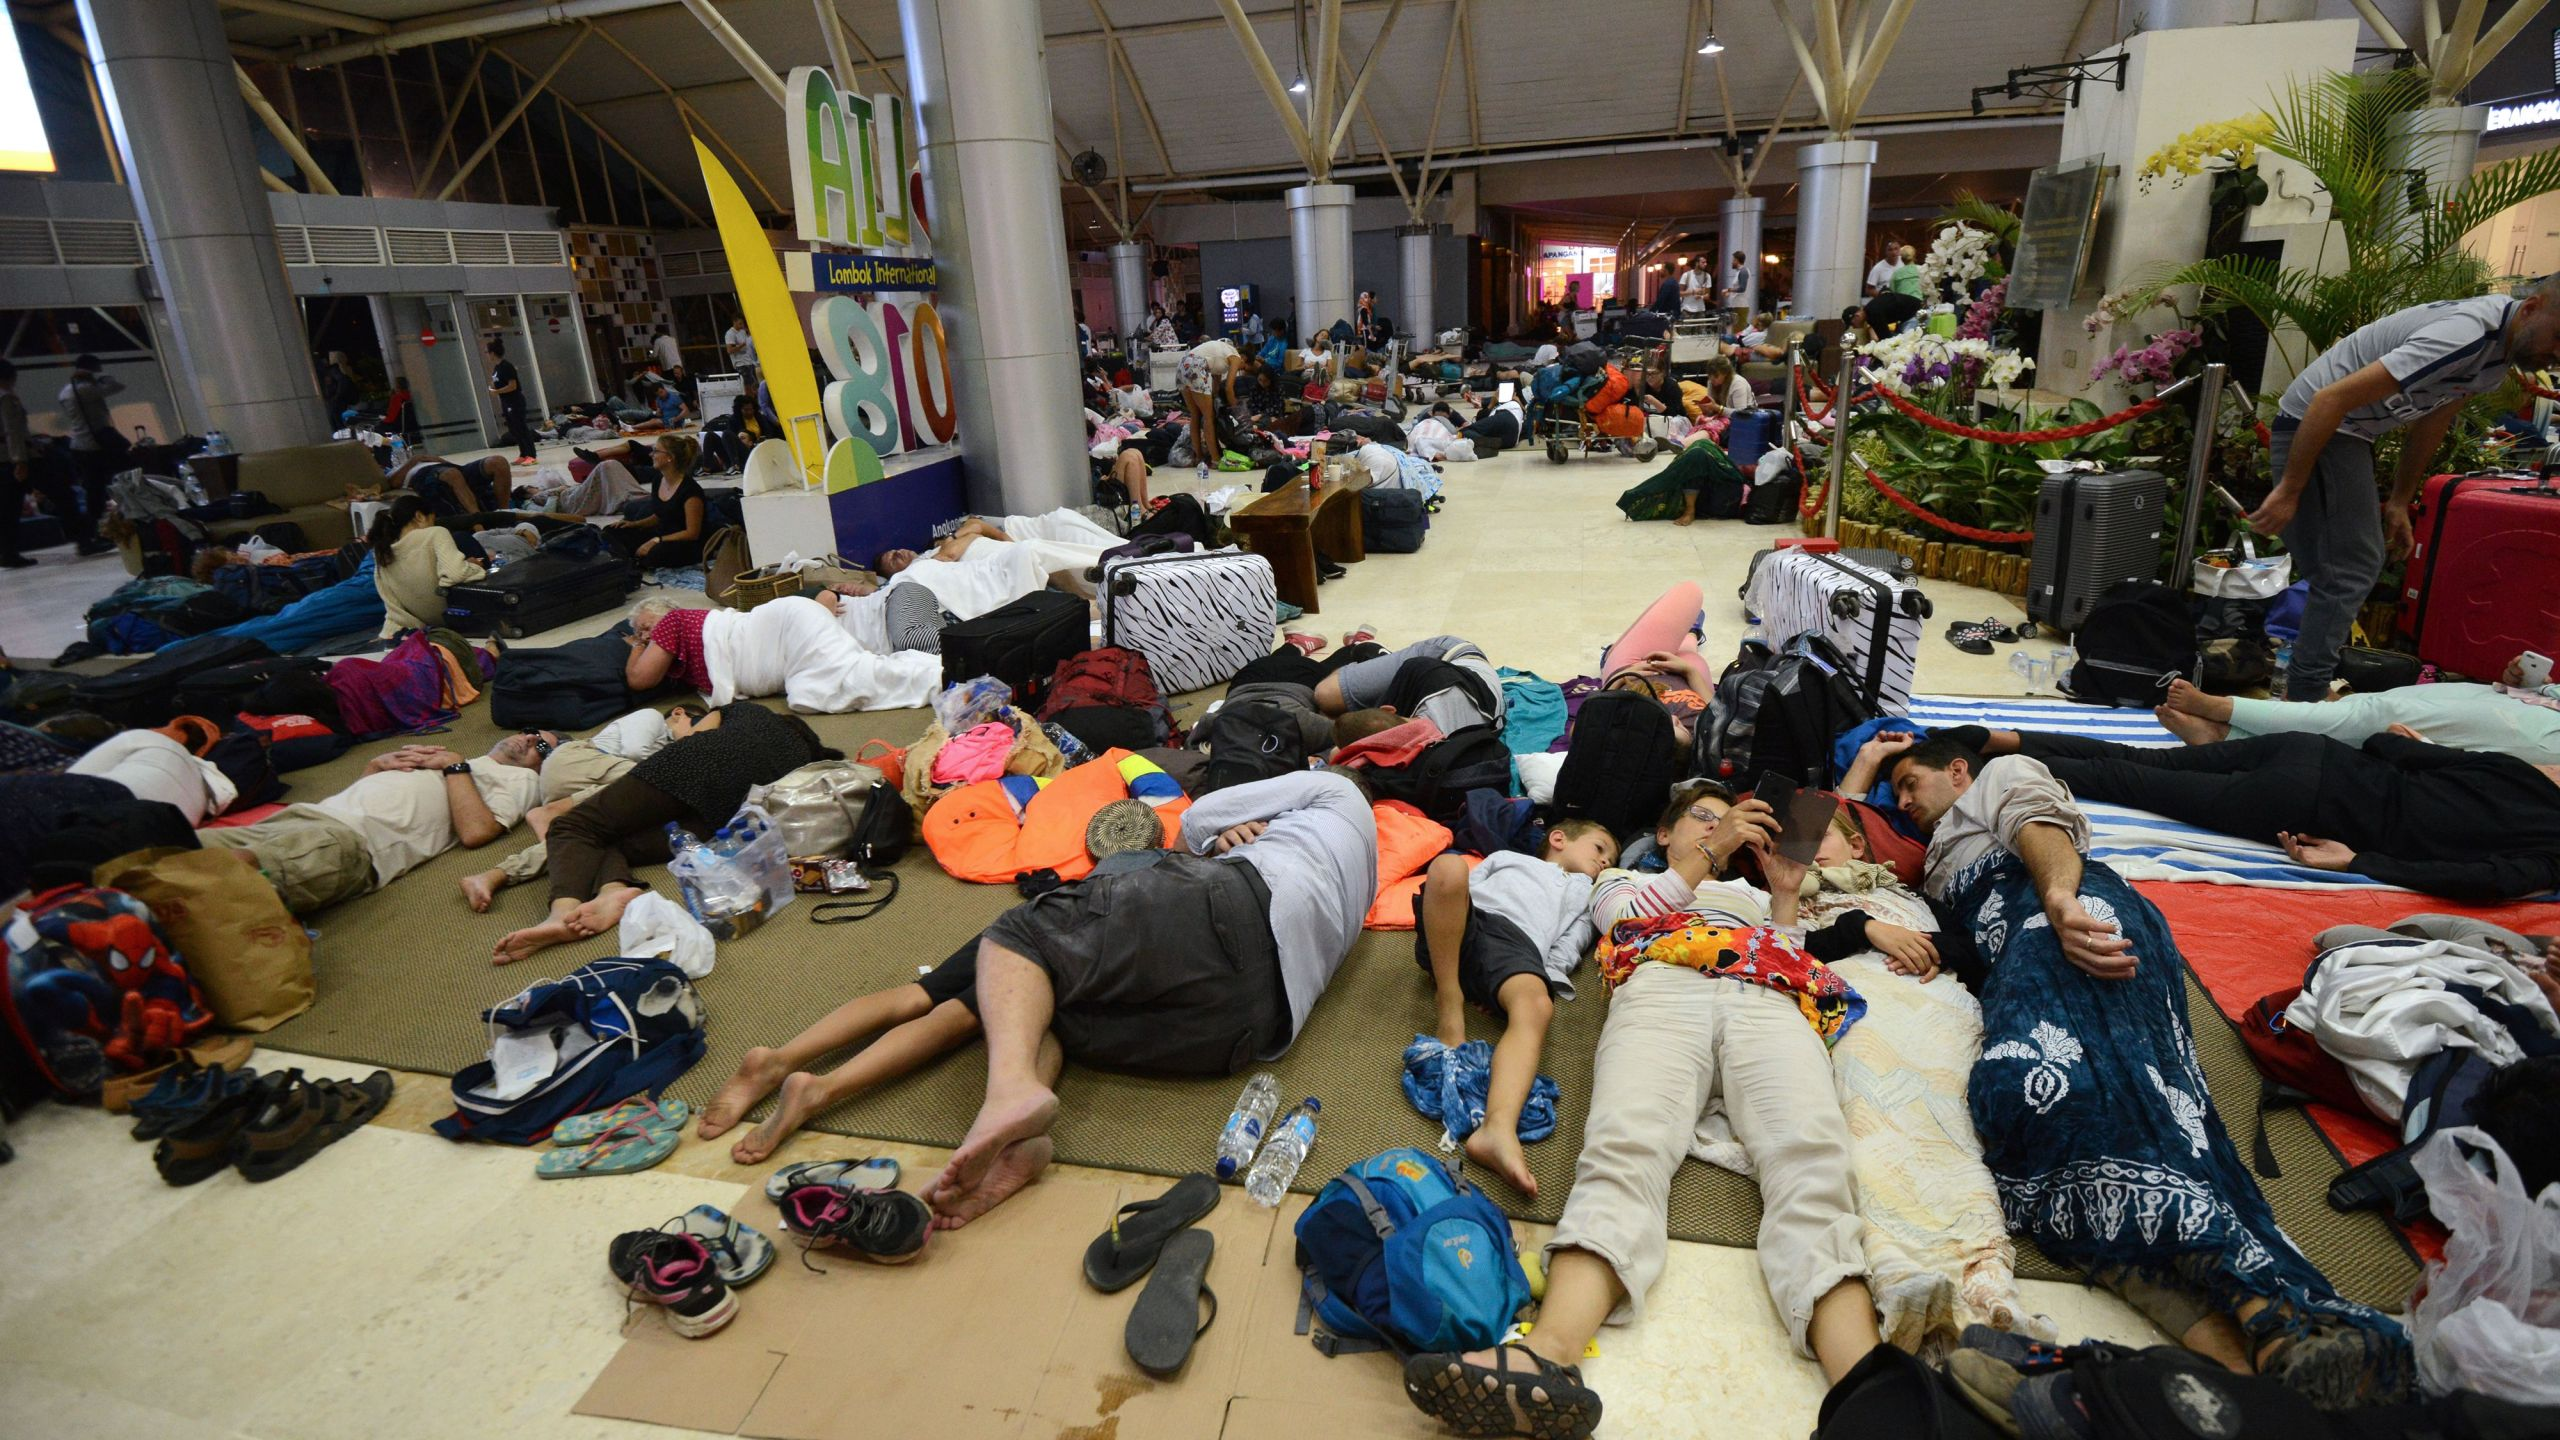 Tourists sleep while waiting to depart from the Praya Lombok International Airport on the West Nusa Tenggara province on Aug. 6, 2018. (Credit: SONNY TUMBELAKA/AFP/Getty Images)